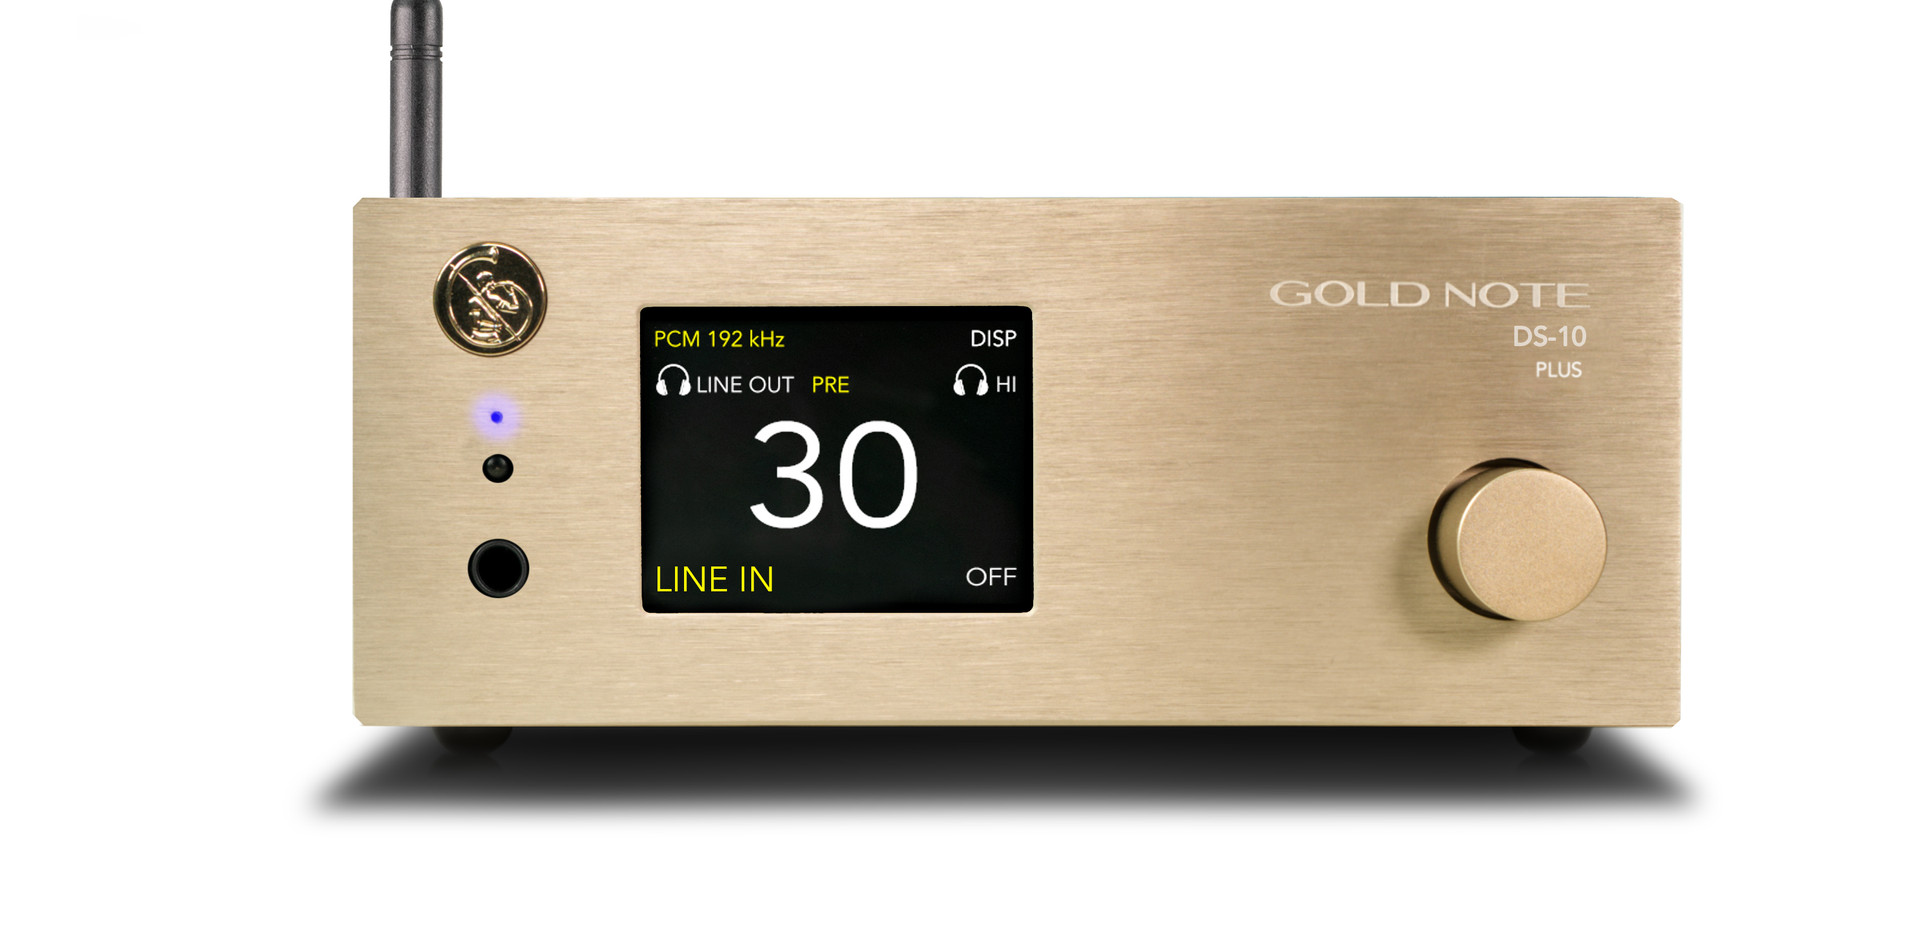 Gold Note DS-10-PLUS gold